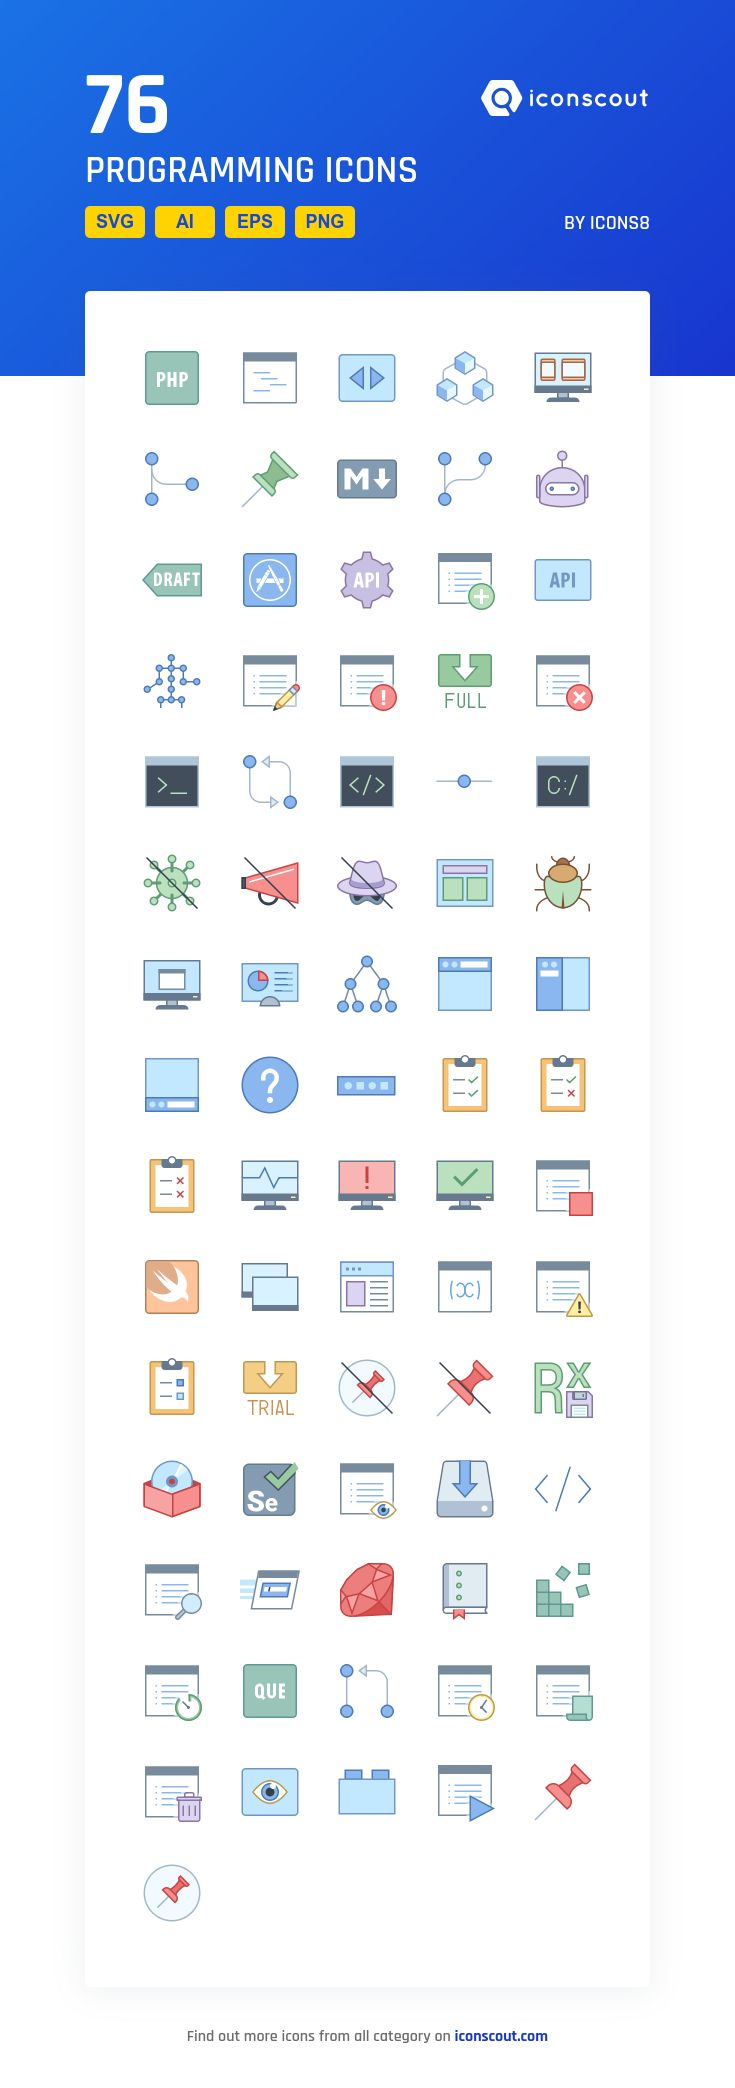 Programming   Icon Pack - 76 Filled Outline Icons